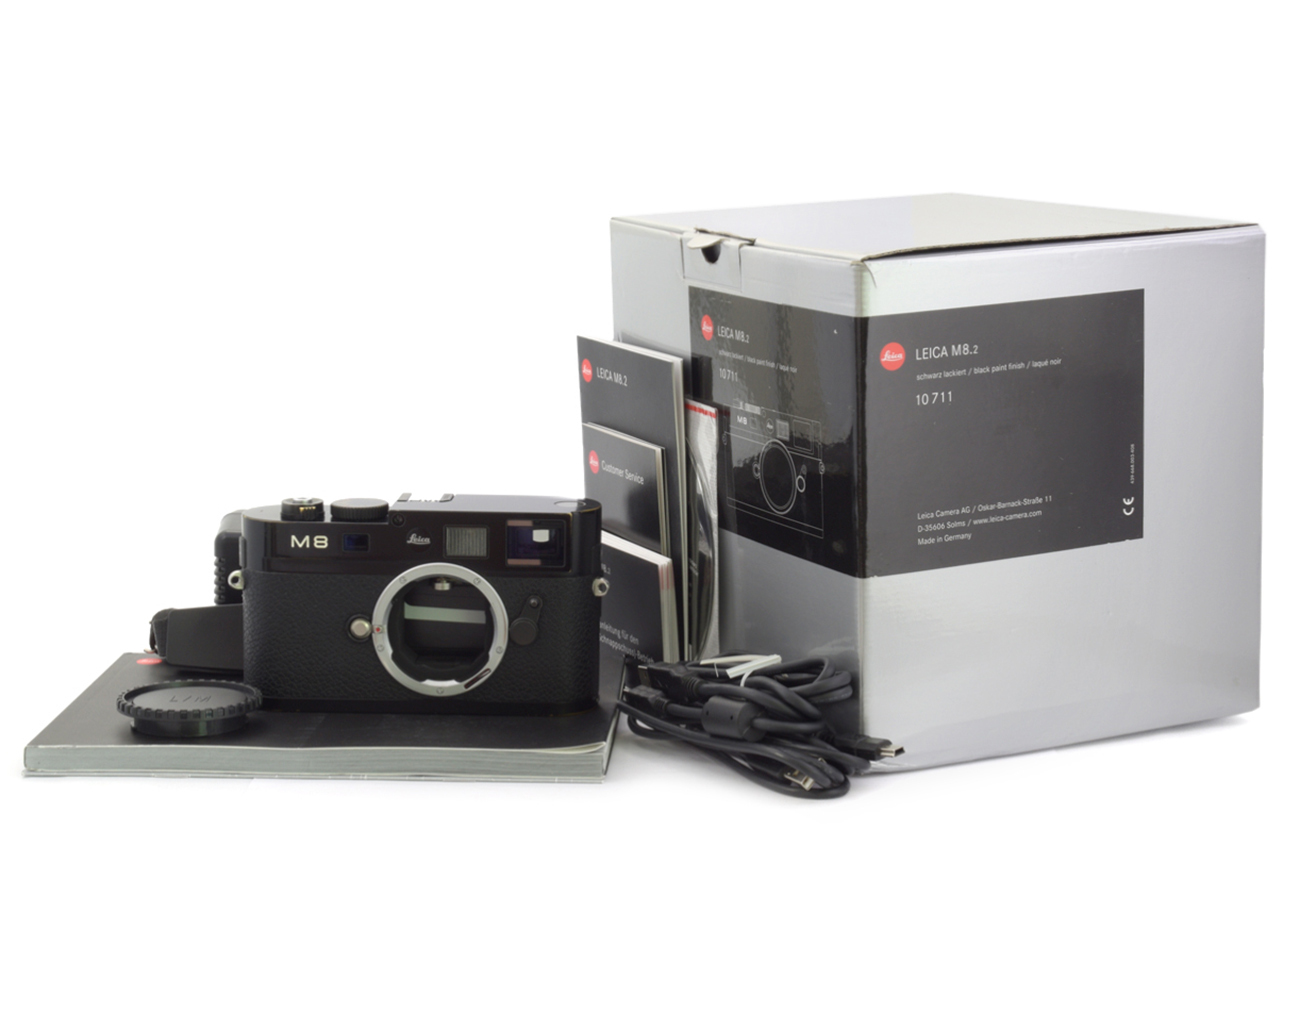 Leica-M8-2-Rangefinder-Digital-Camera-Body-3558020-Black-10711